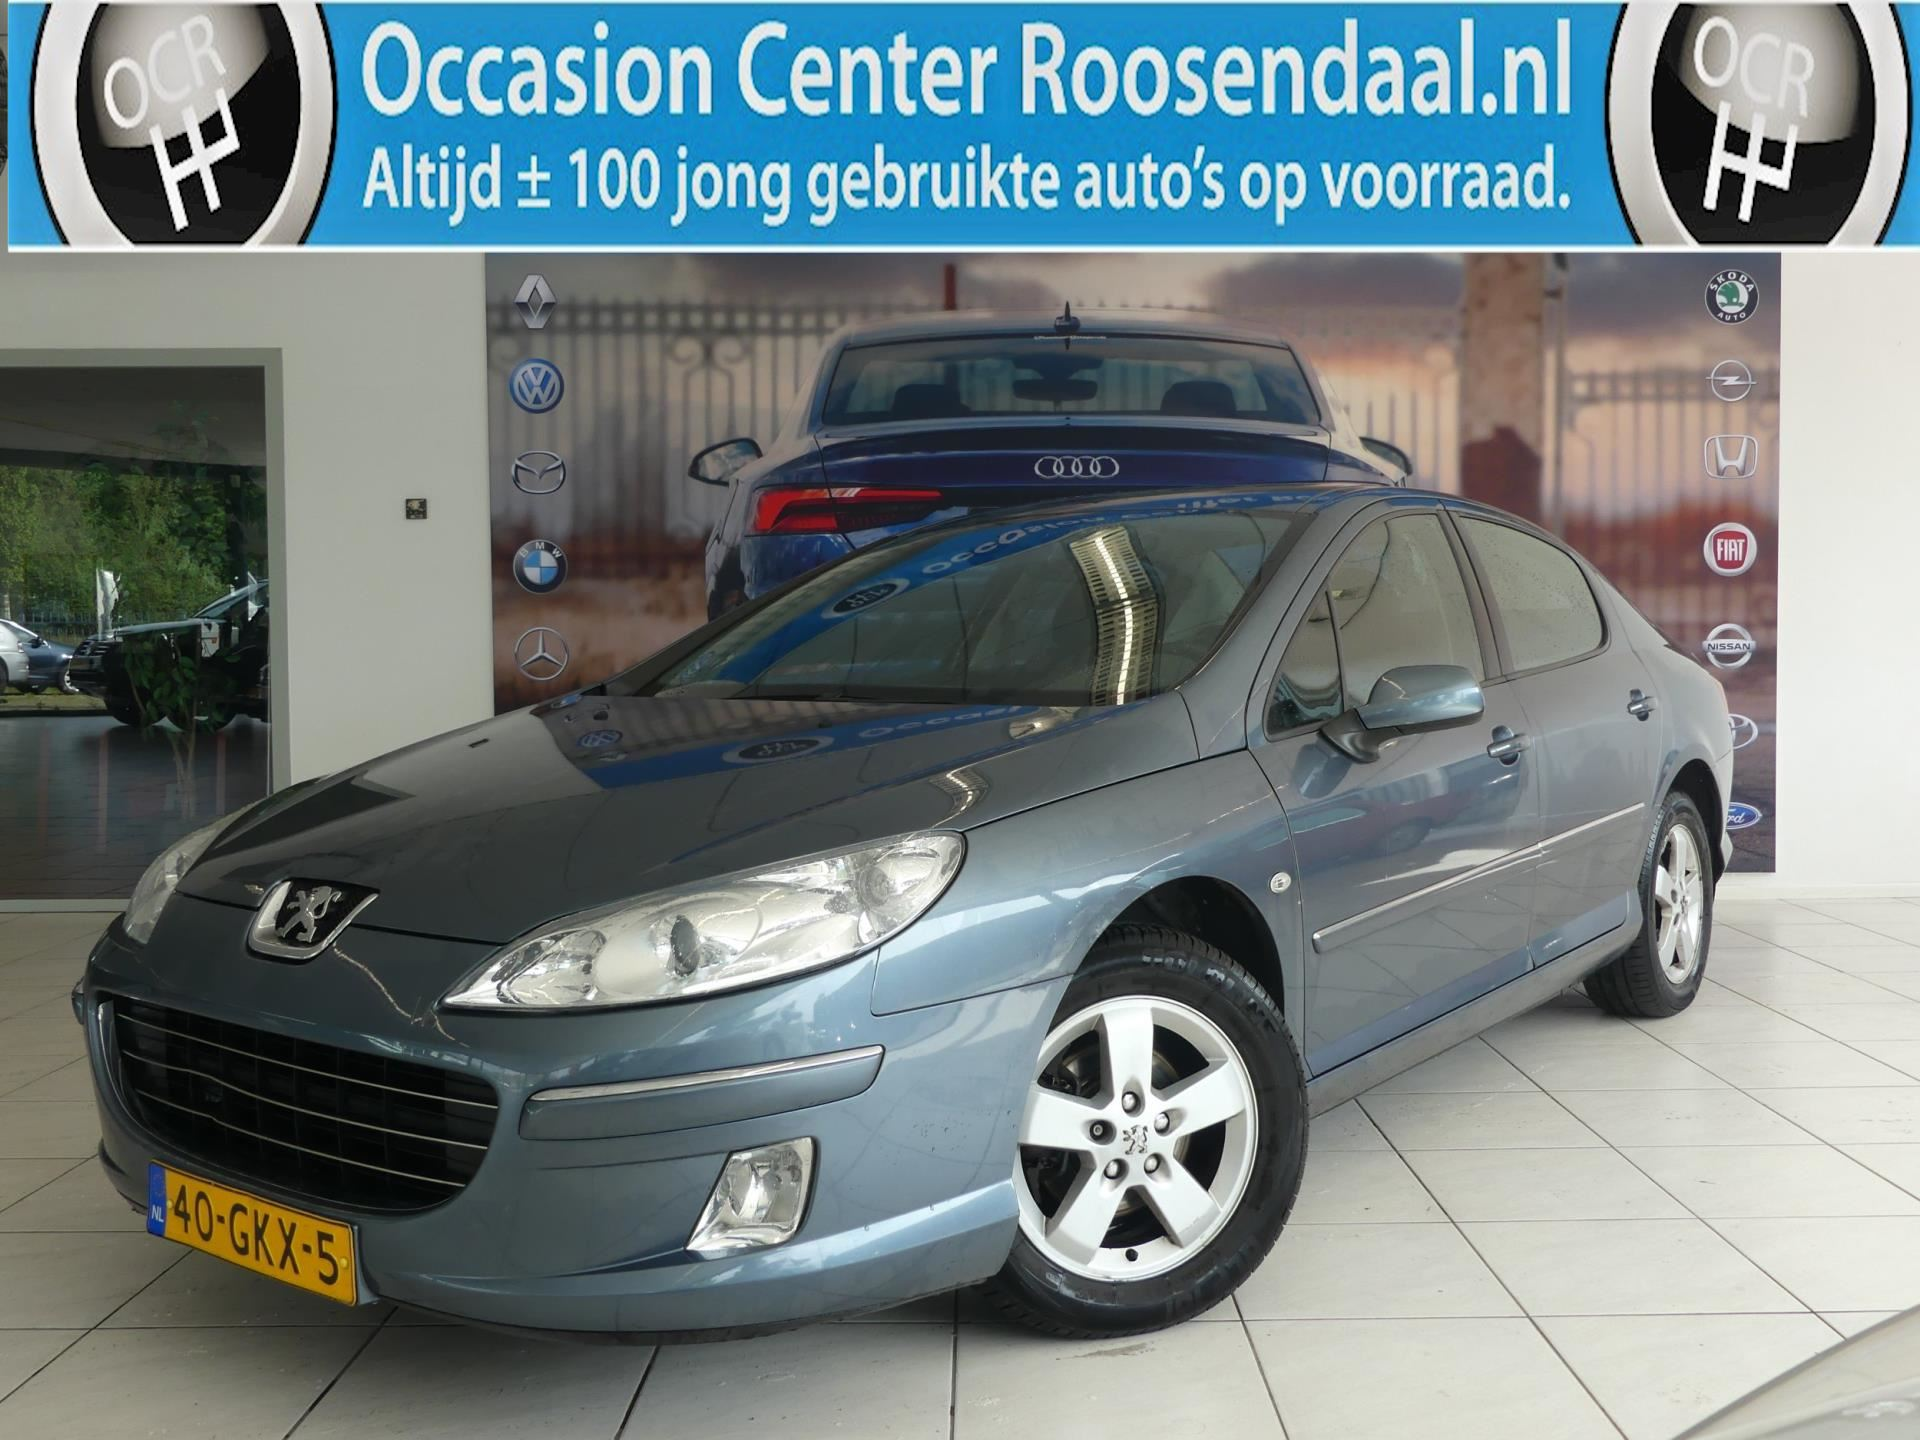 Peugeot 407 occasion - Occasion Center Roosendaal